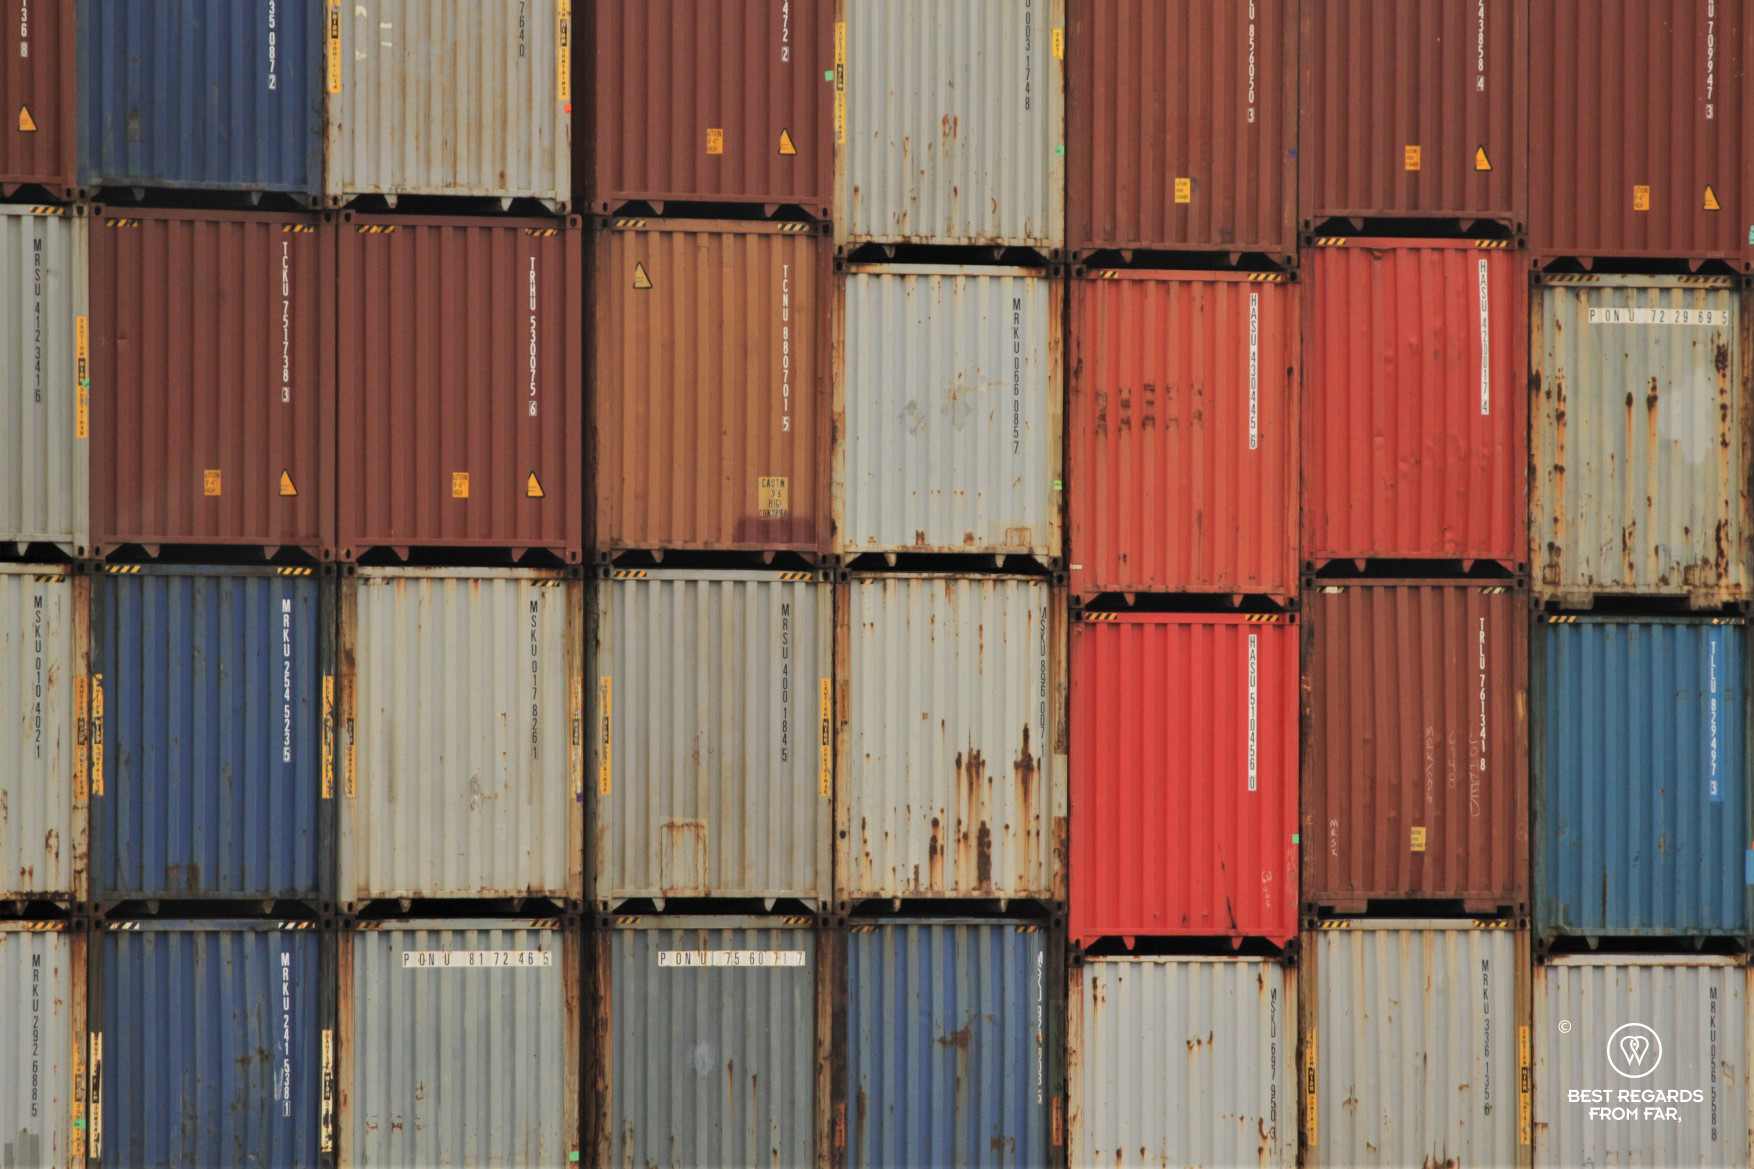 Colourful containers piled up in the industrial harbour of Antwerp, Belgium